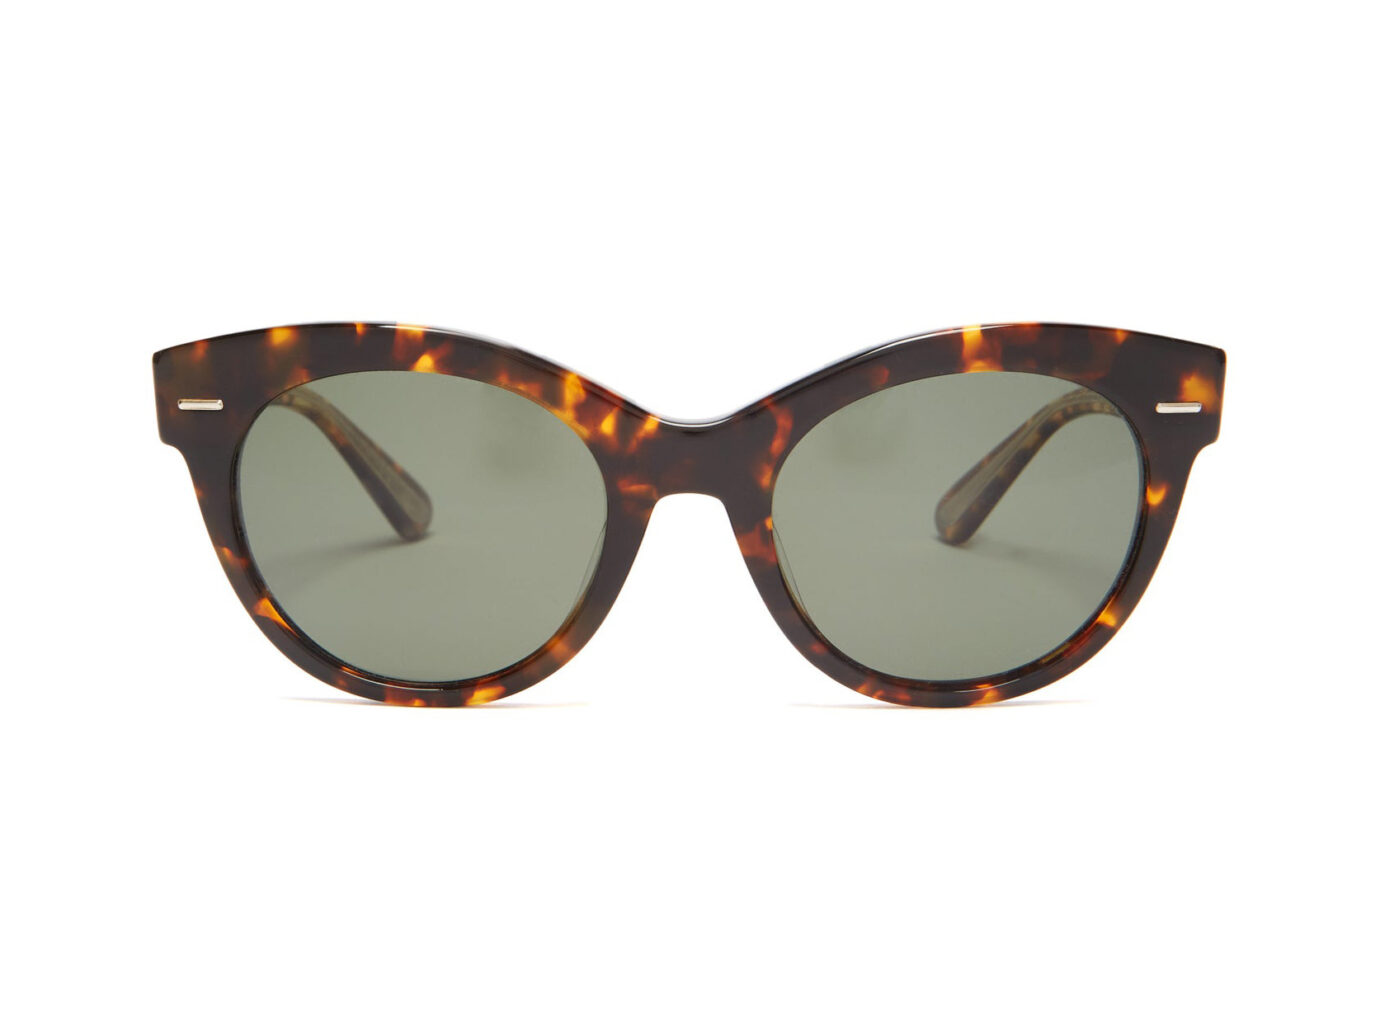 The Row X Oliver Peoples Georgica cat-eye sunglasses